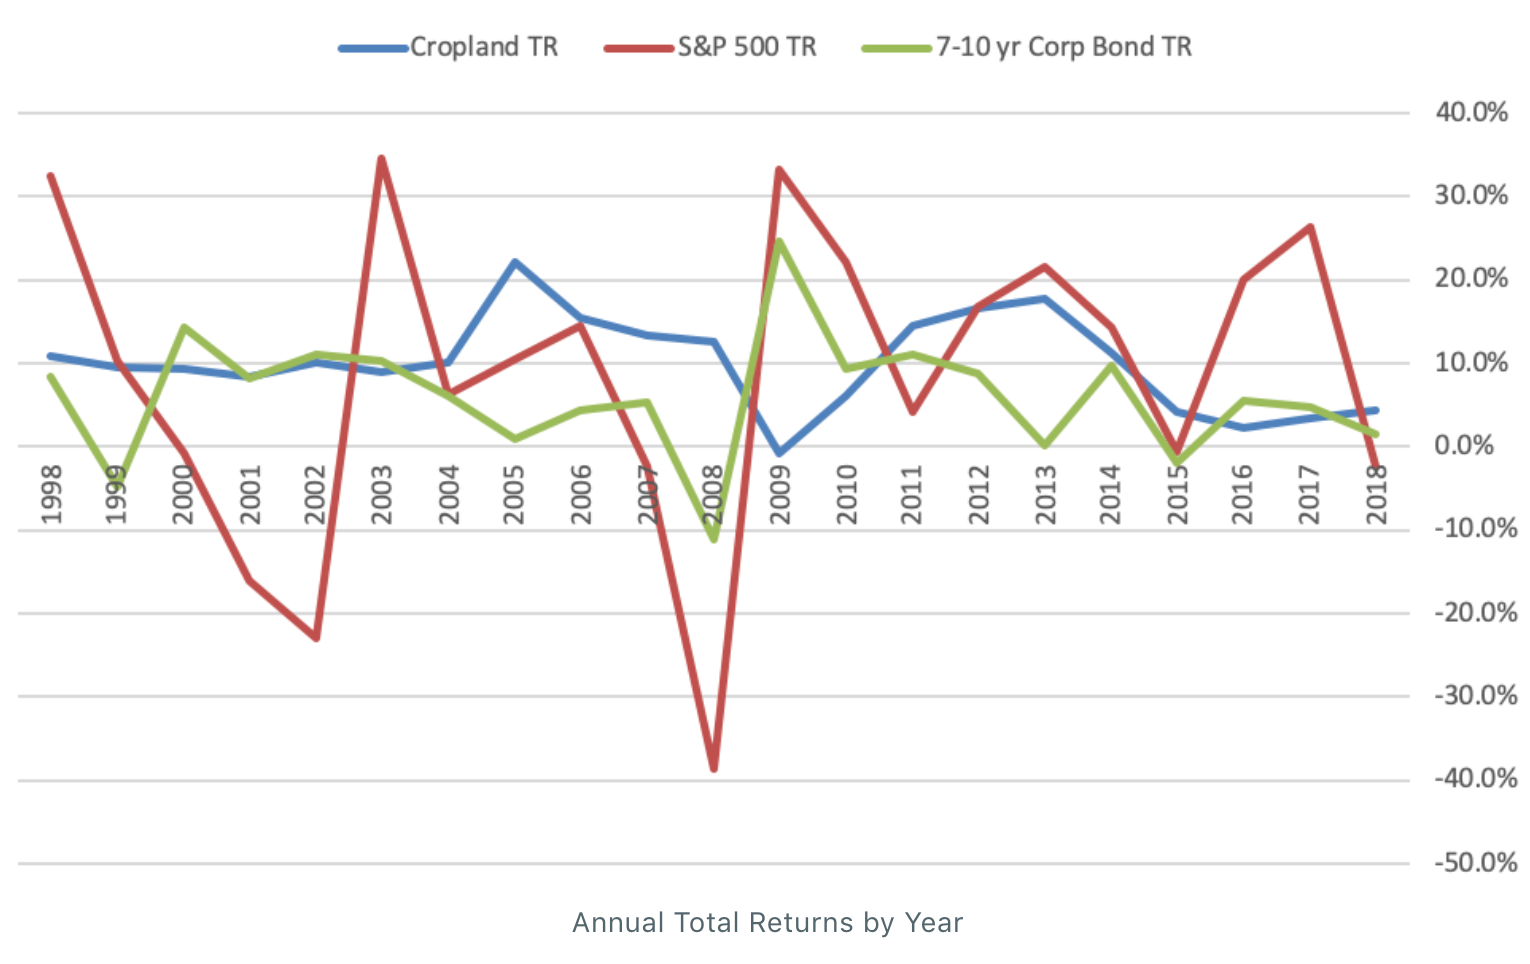 Annual Total Return by Year Comparison - Cropland vs S&P 500 vs 7-10 year Corporate Bond